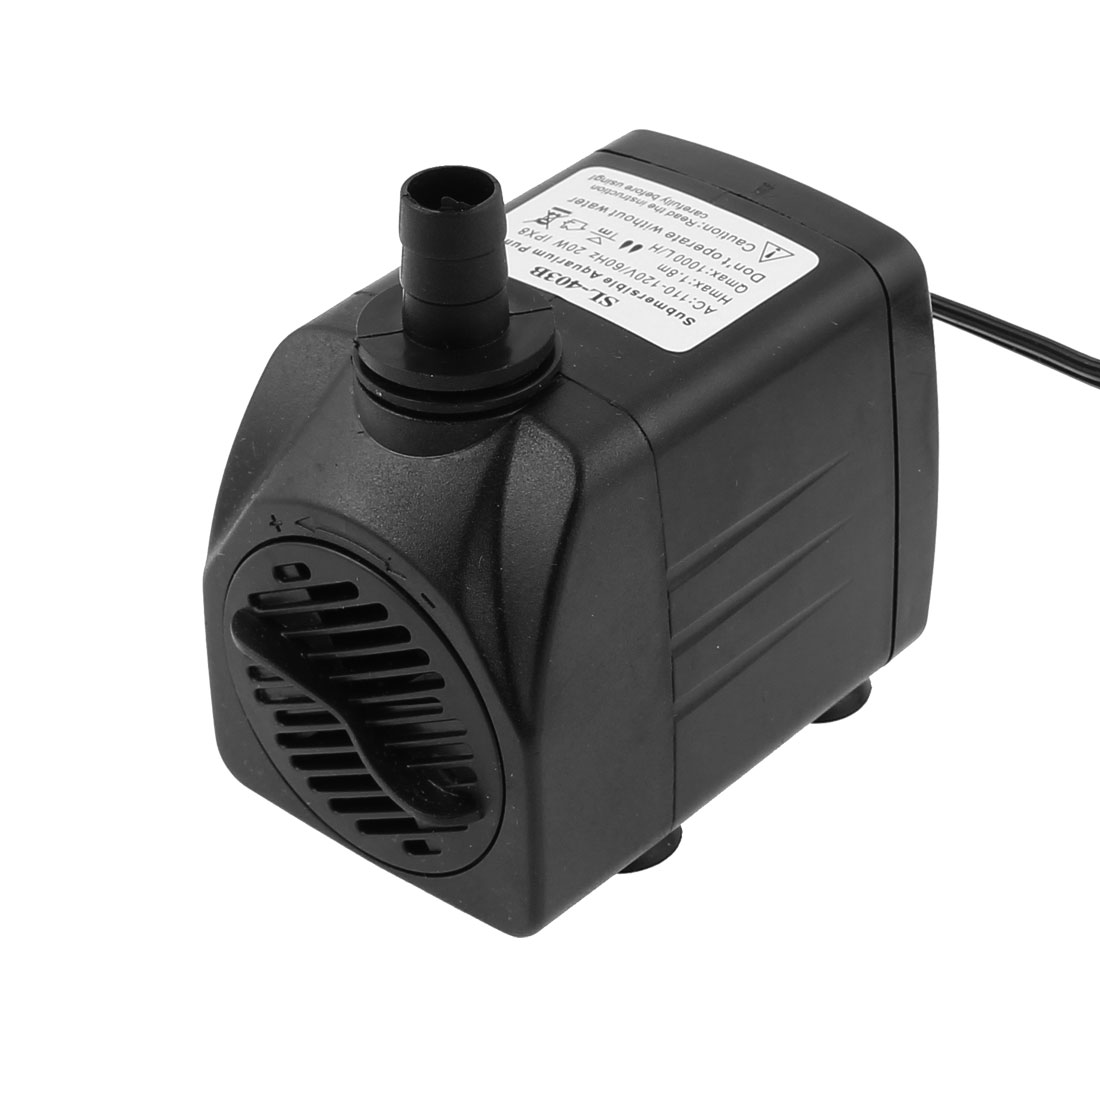 AC 110V-120V US Plug 20W 1000 L/H Electric Submersible Water Pump for Aquarium Fountain Pond